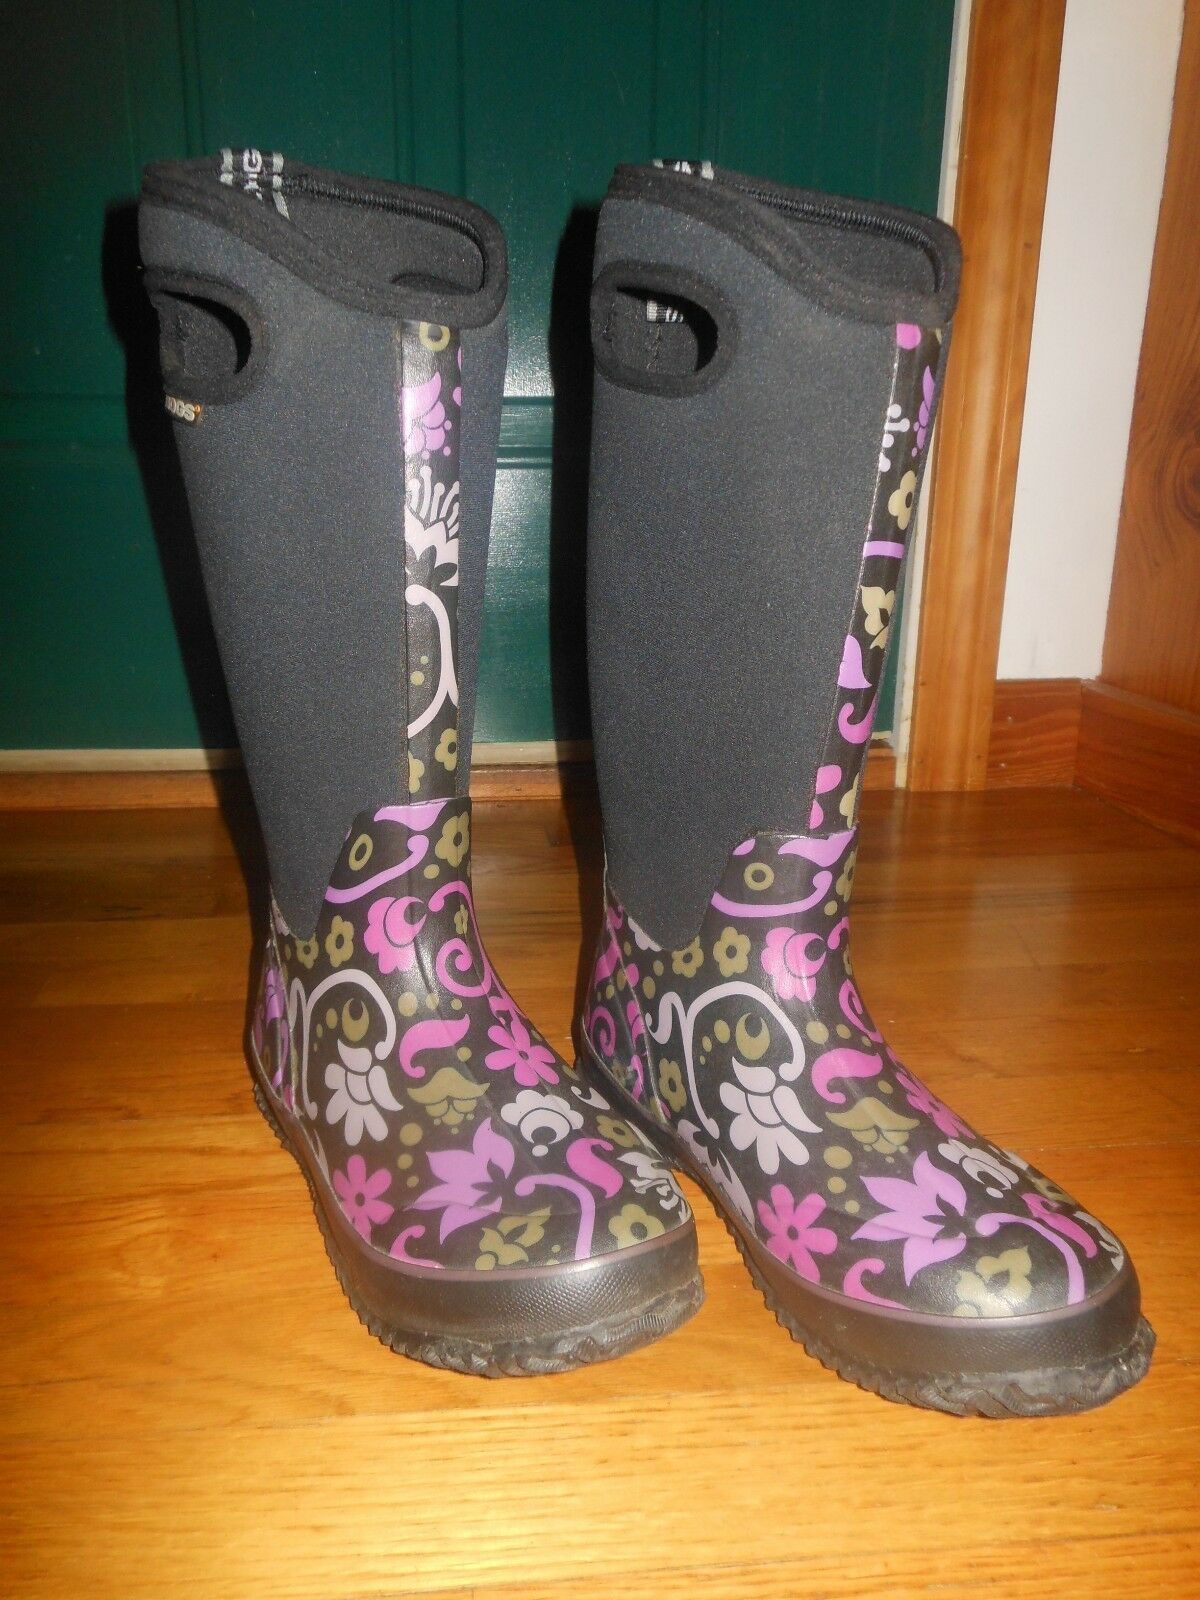 Bogs Classic High Corsage women's boots - Sz 6 M - Worn once